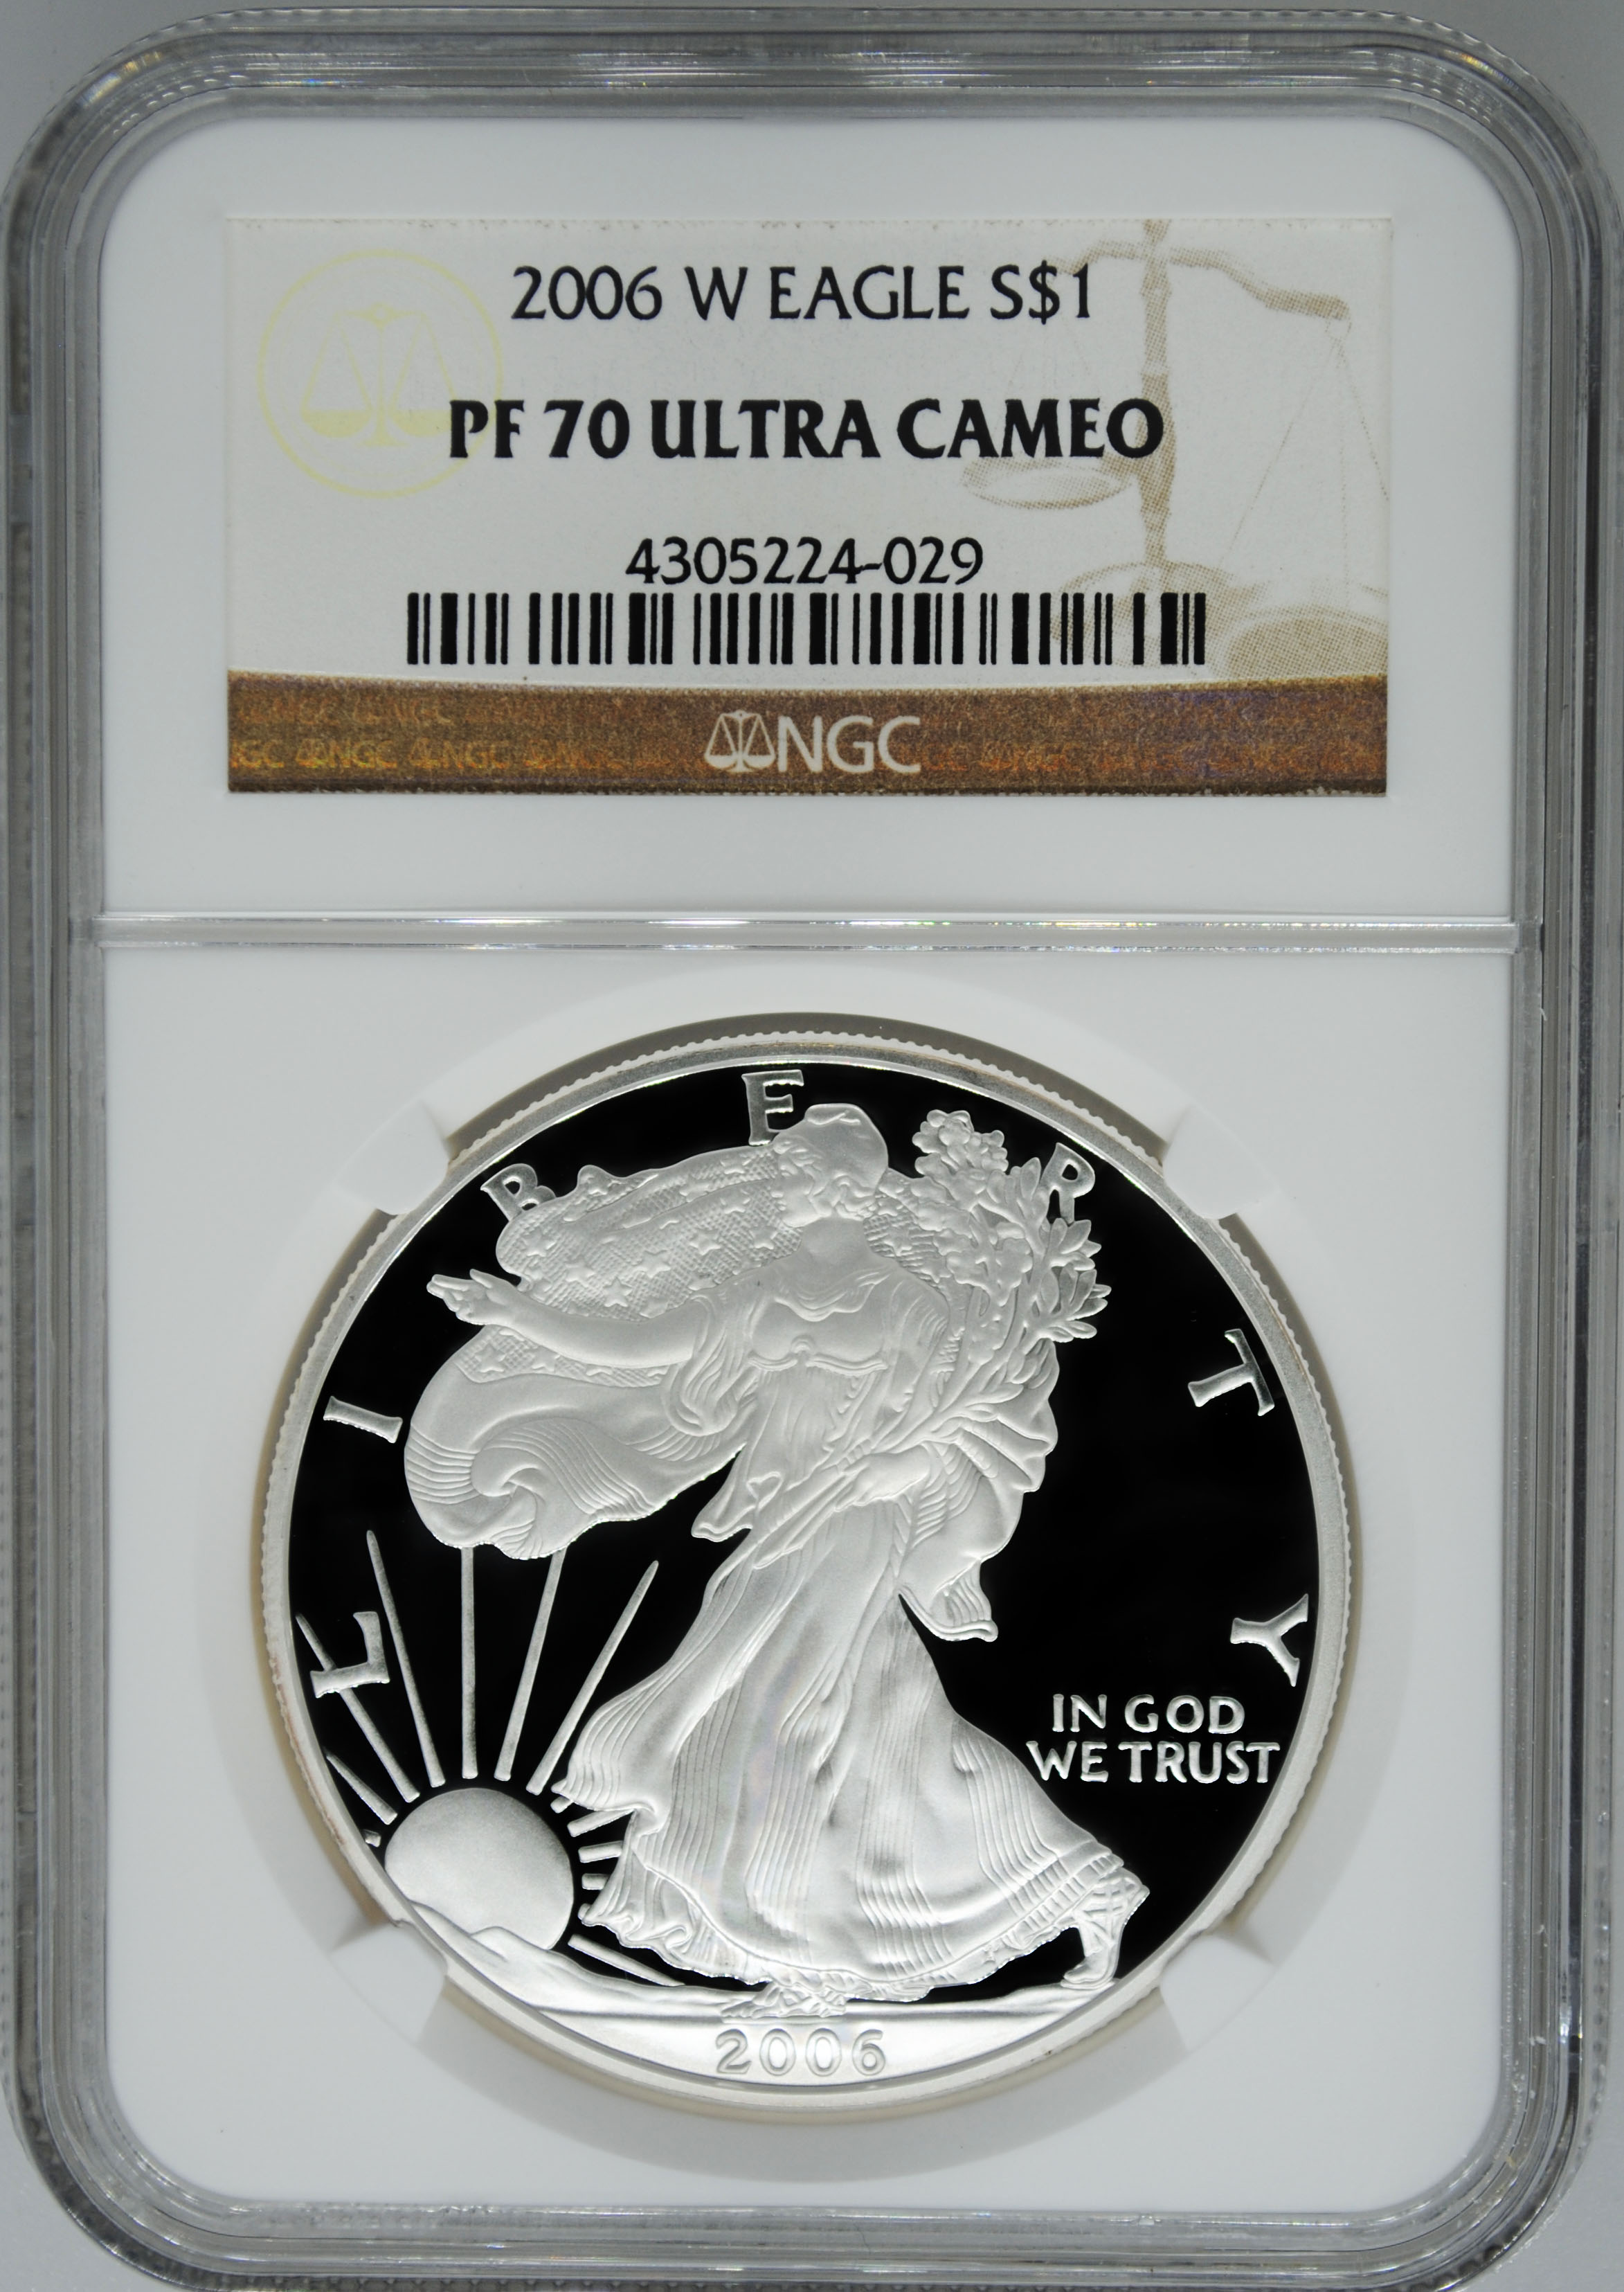 2006 W Ngc Pf70 Ultra Cameo Proof Silver Eagle